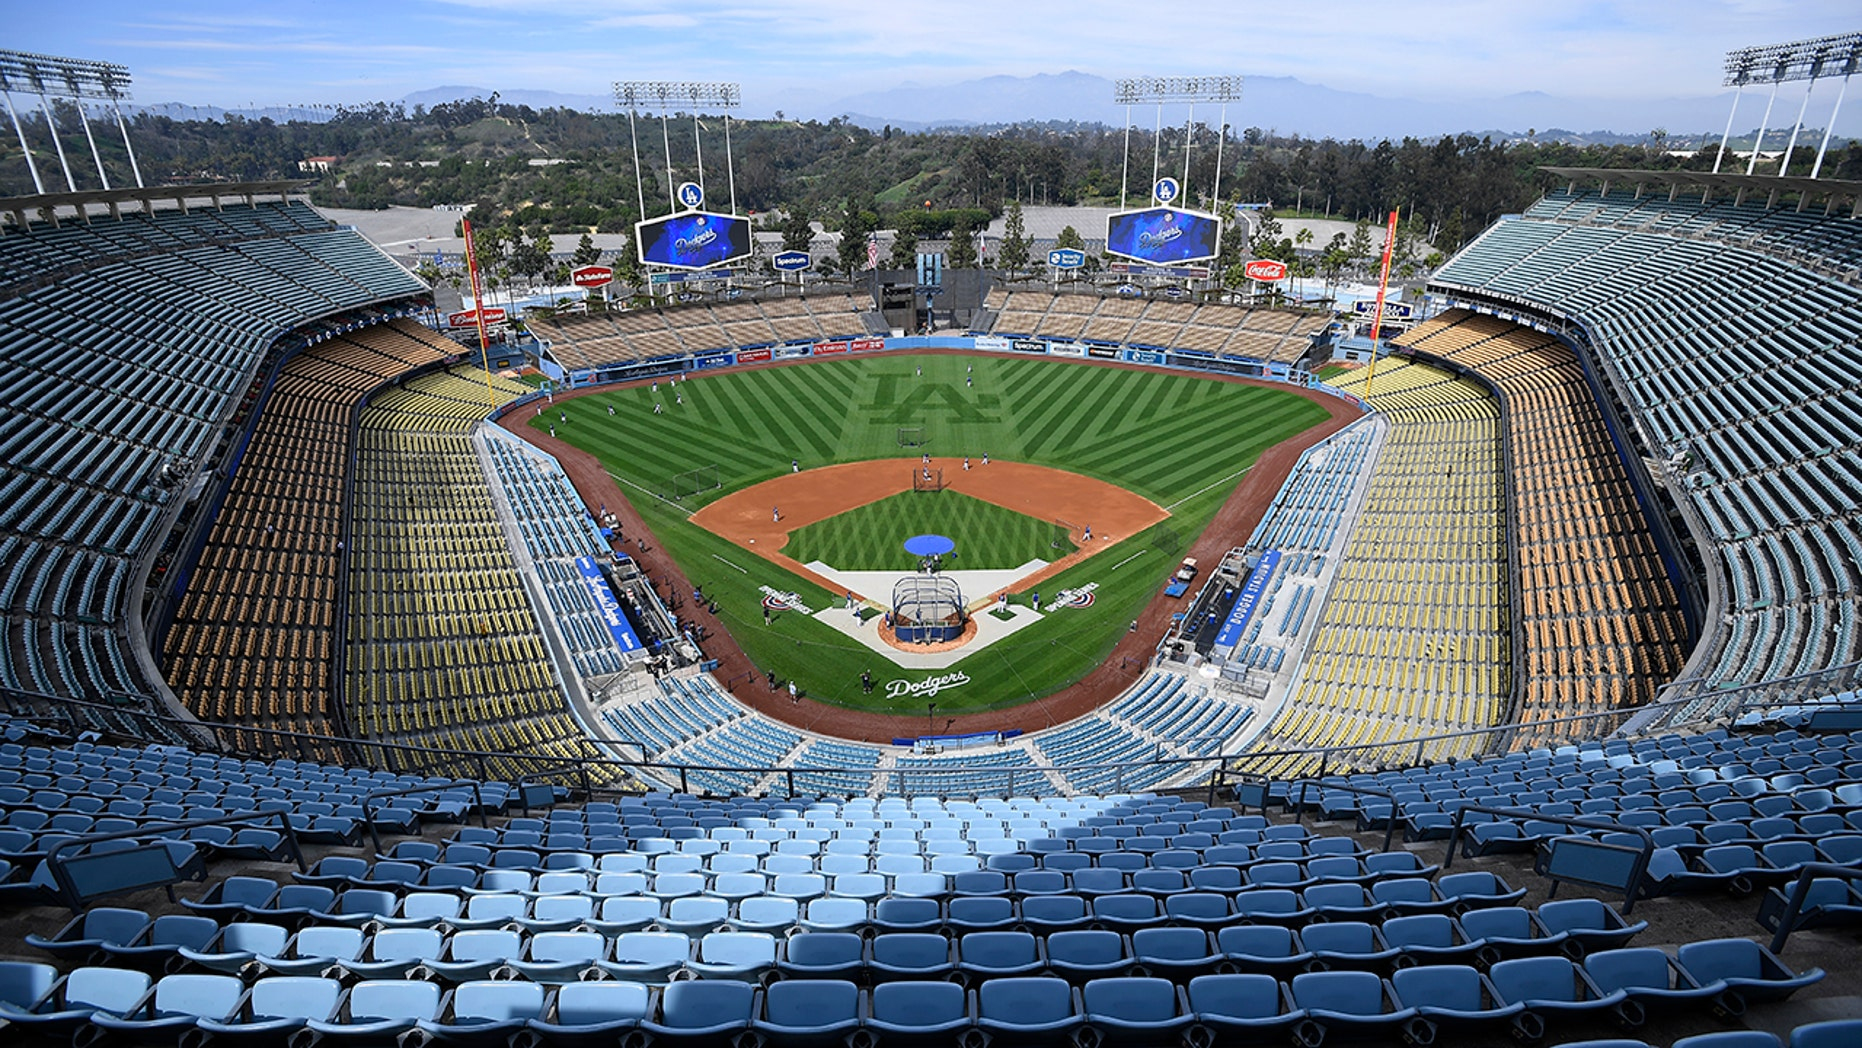 Woman dies after being struck by foul ball at Dodger Stadium